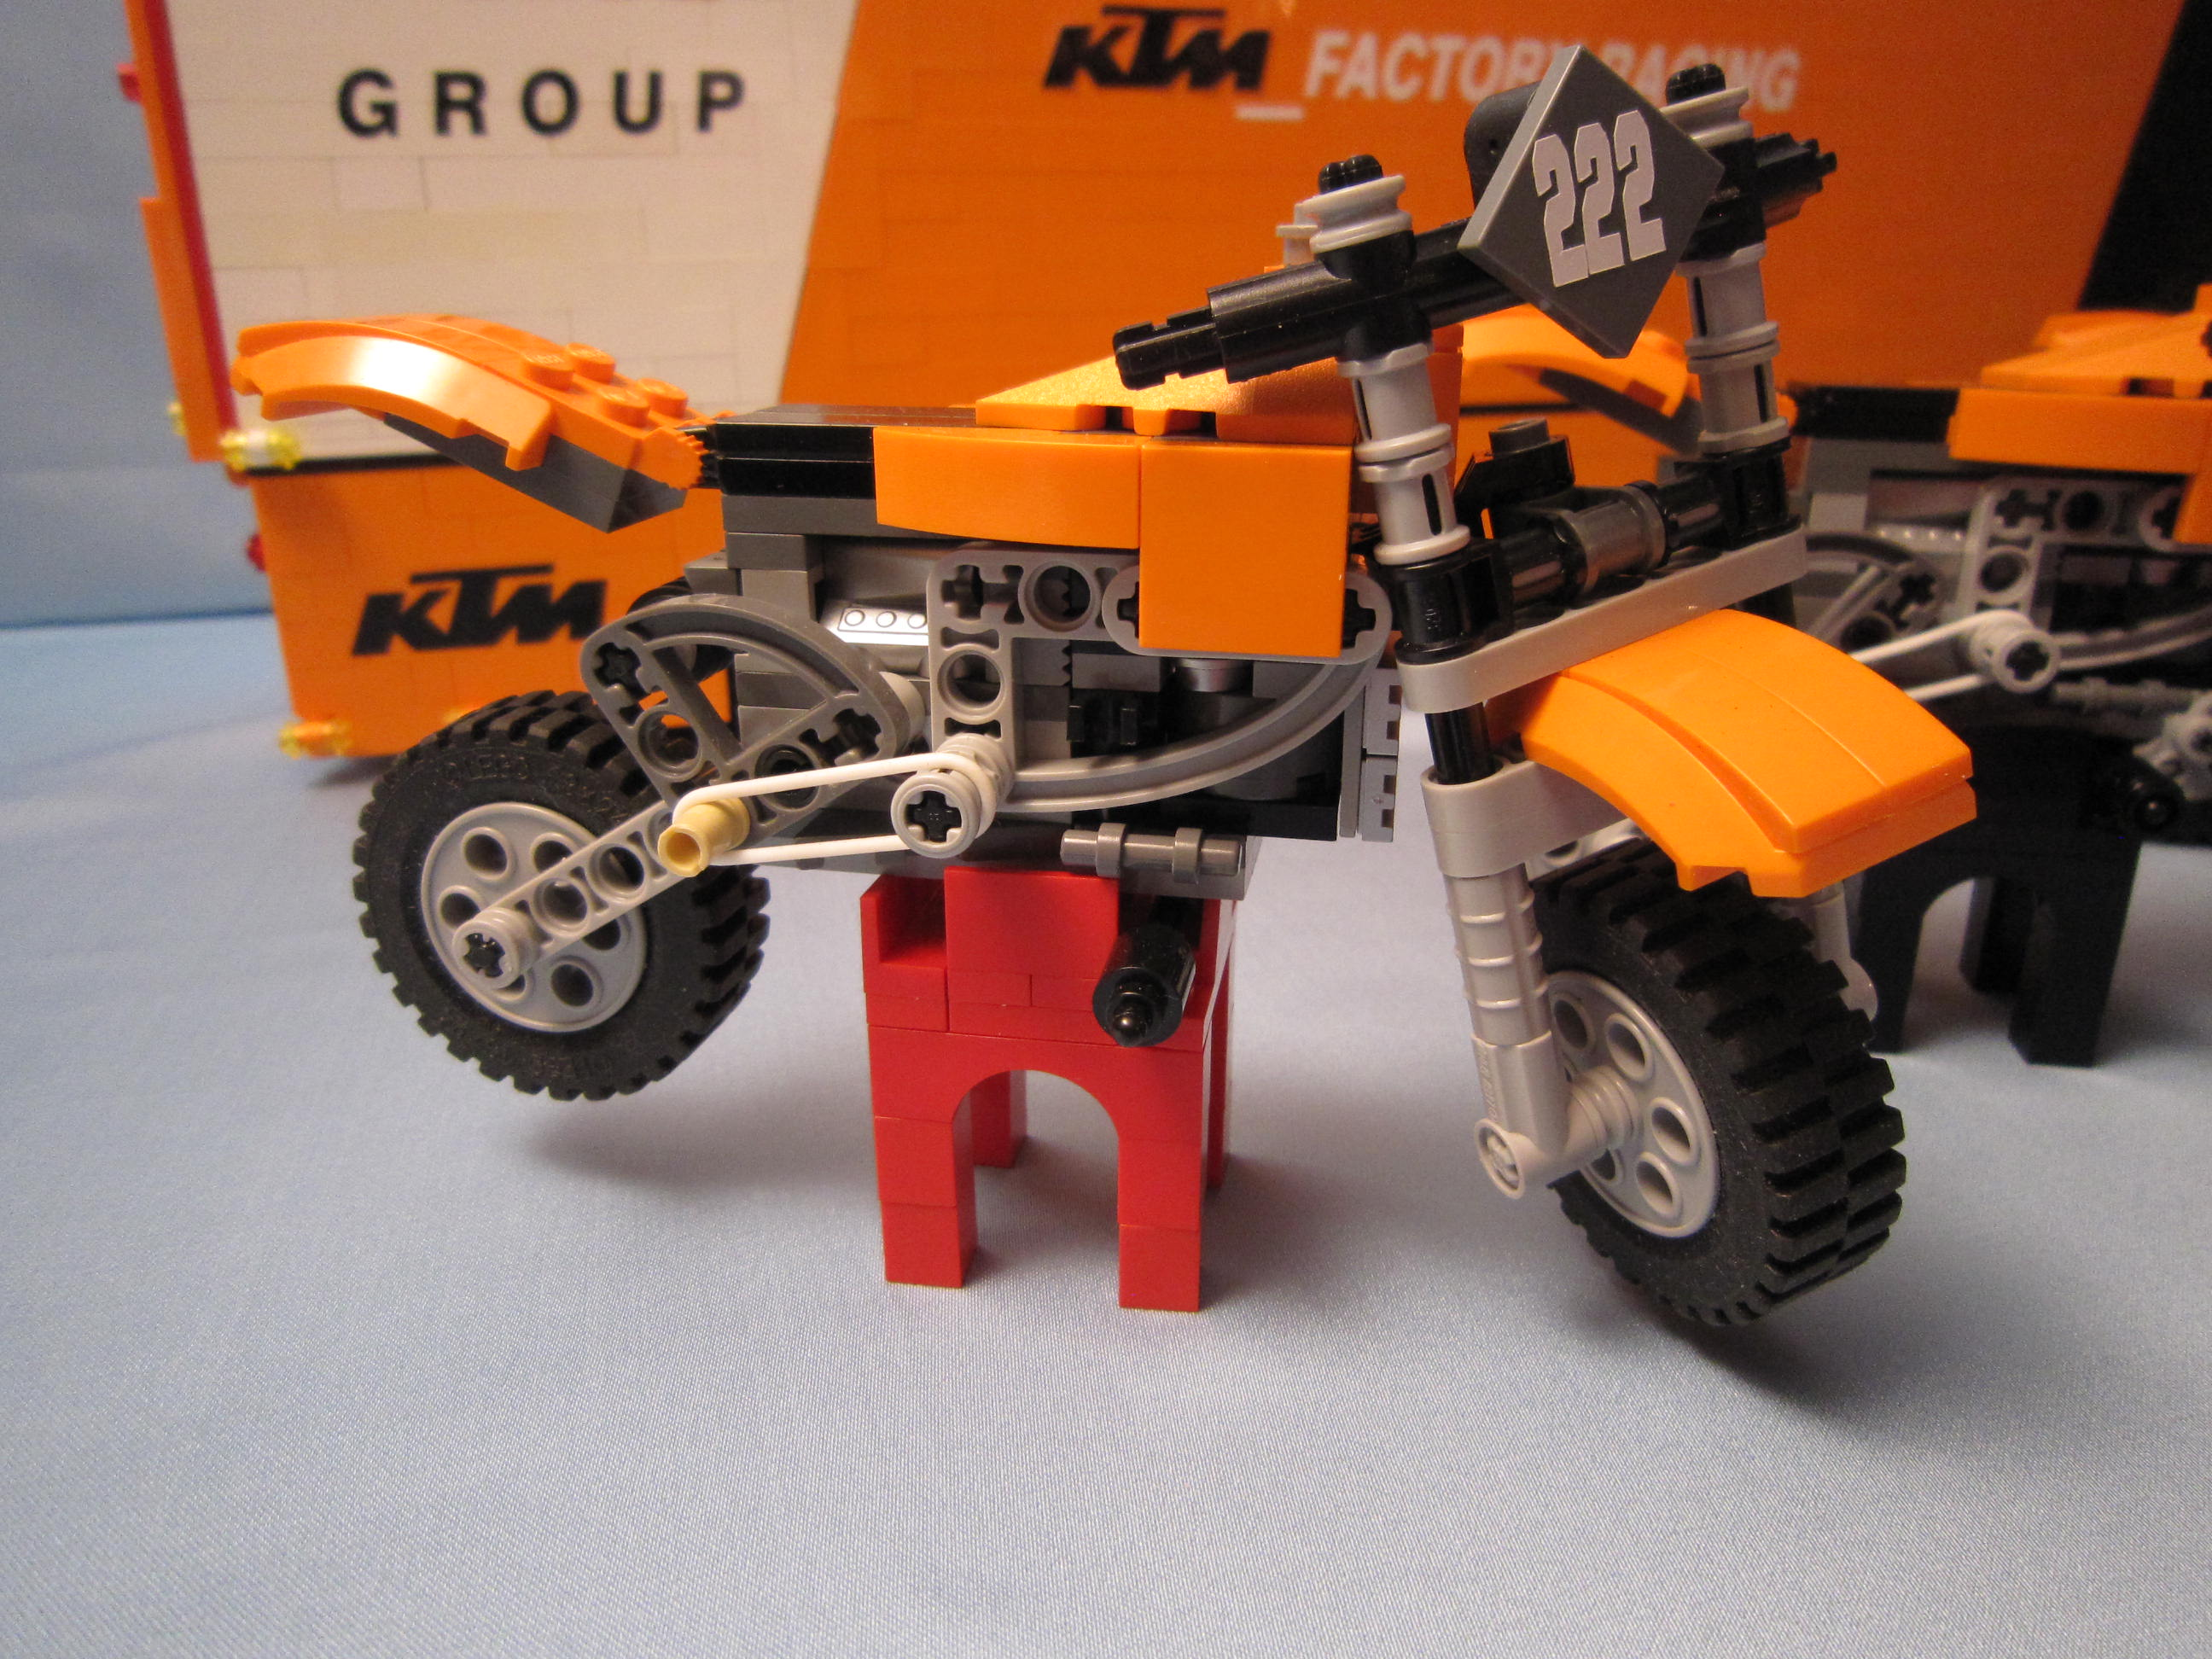 tribute_ktm_factory_racing_029.jpg